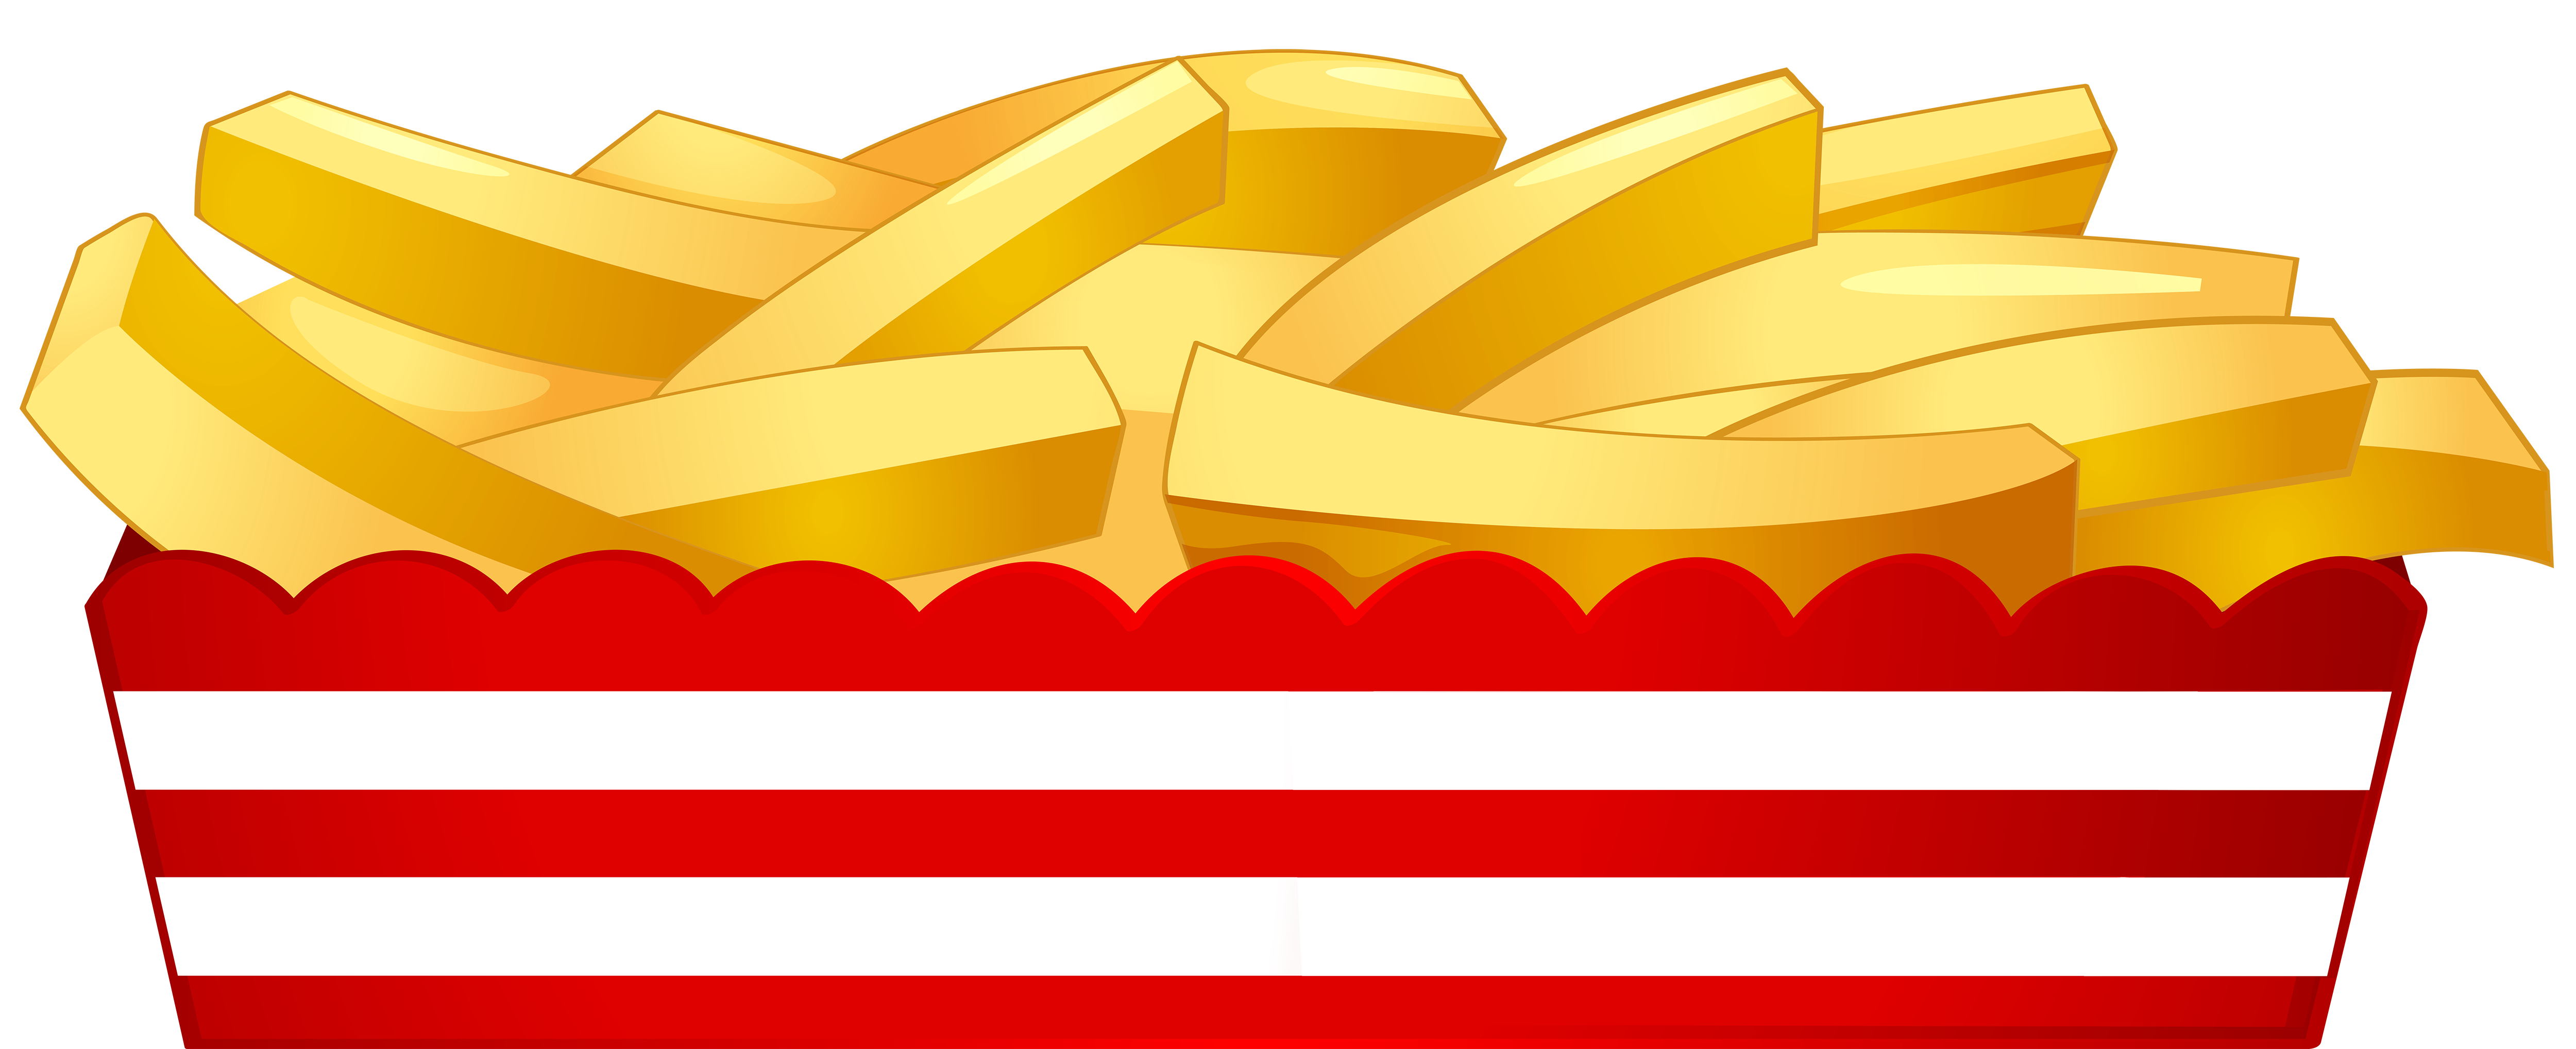 vector library library Food borders clipart. Chips french fry pencil